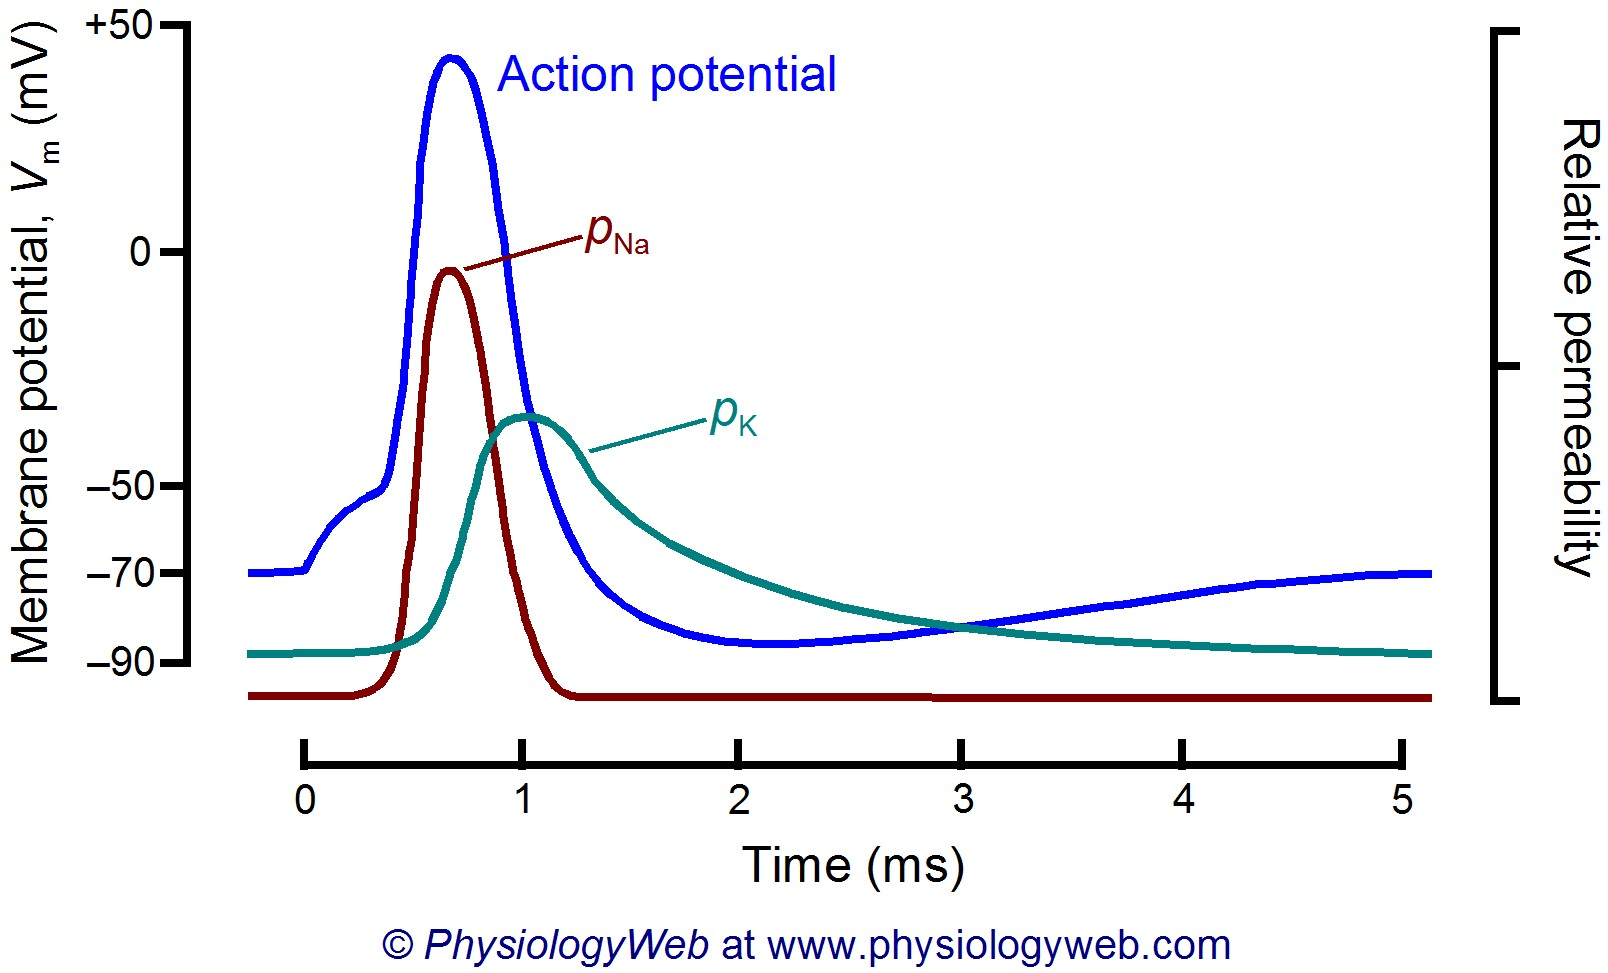 Time course of sodium and potassium permeability during the neuronal action potential